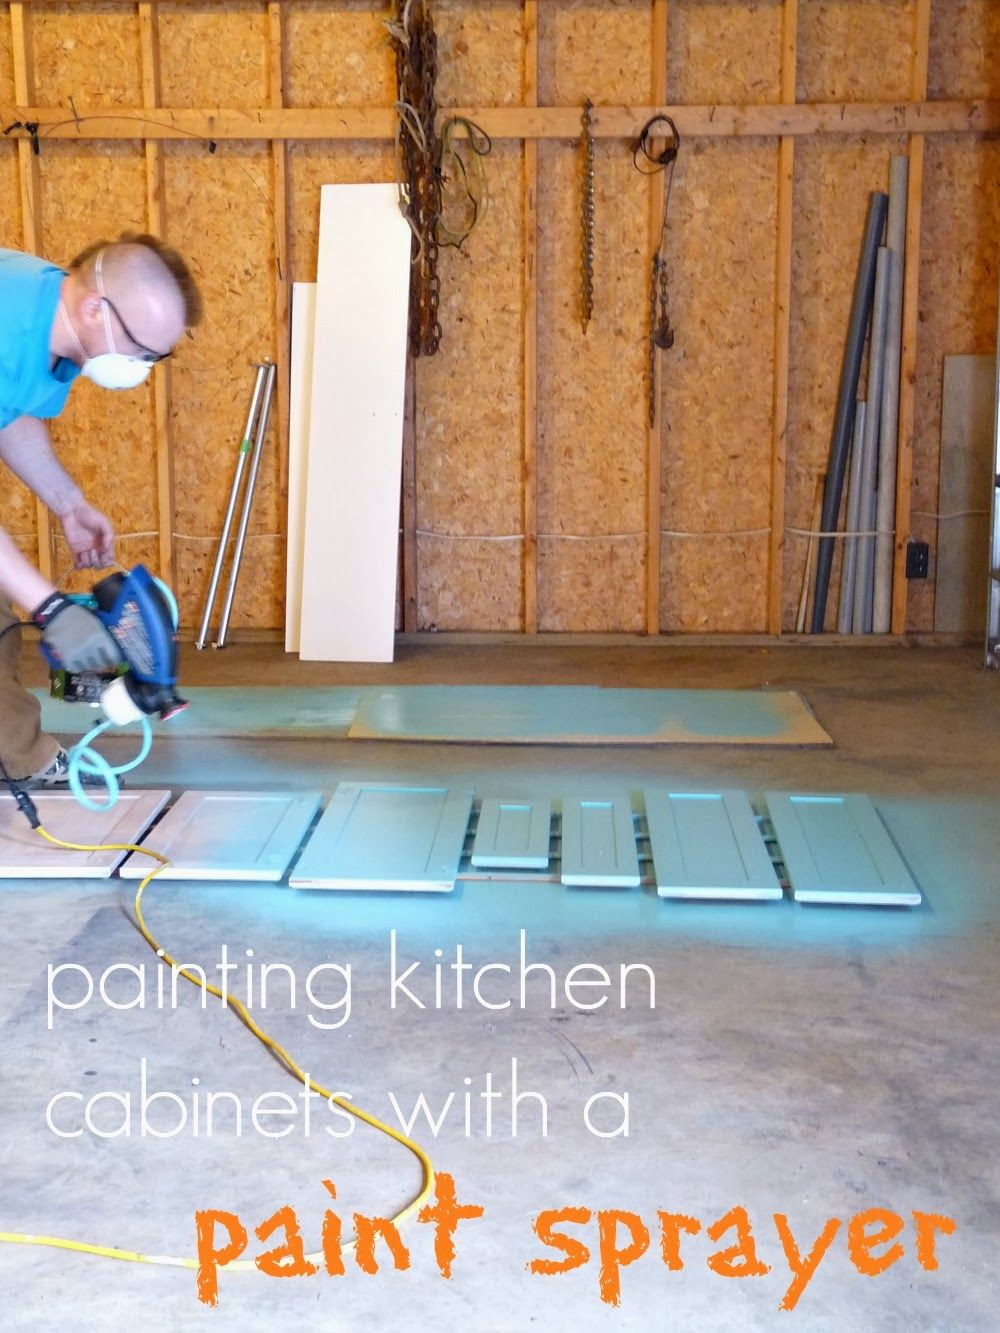 painting the kitchen cabinets with a paint sprayer cabinets painting the kitchen cabinets with a paint sprayer